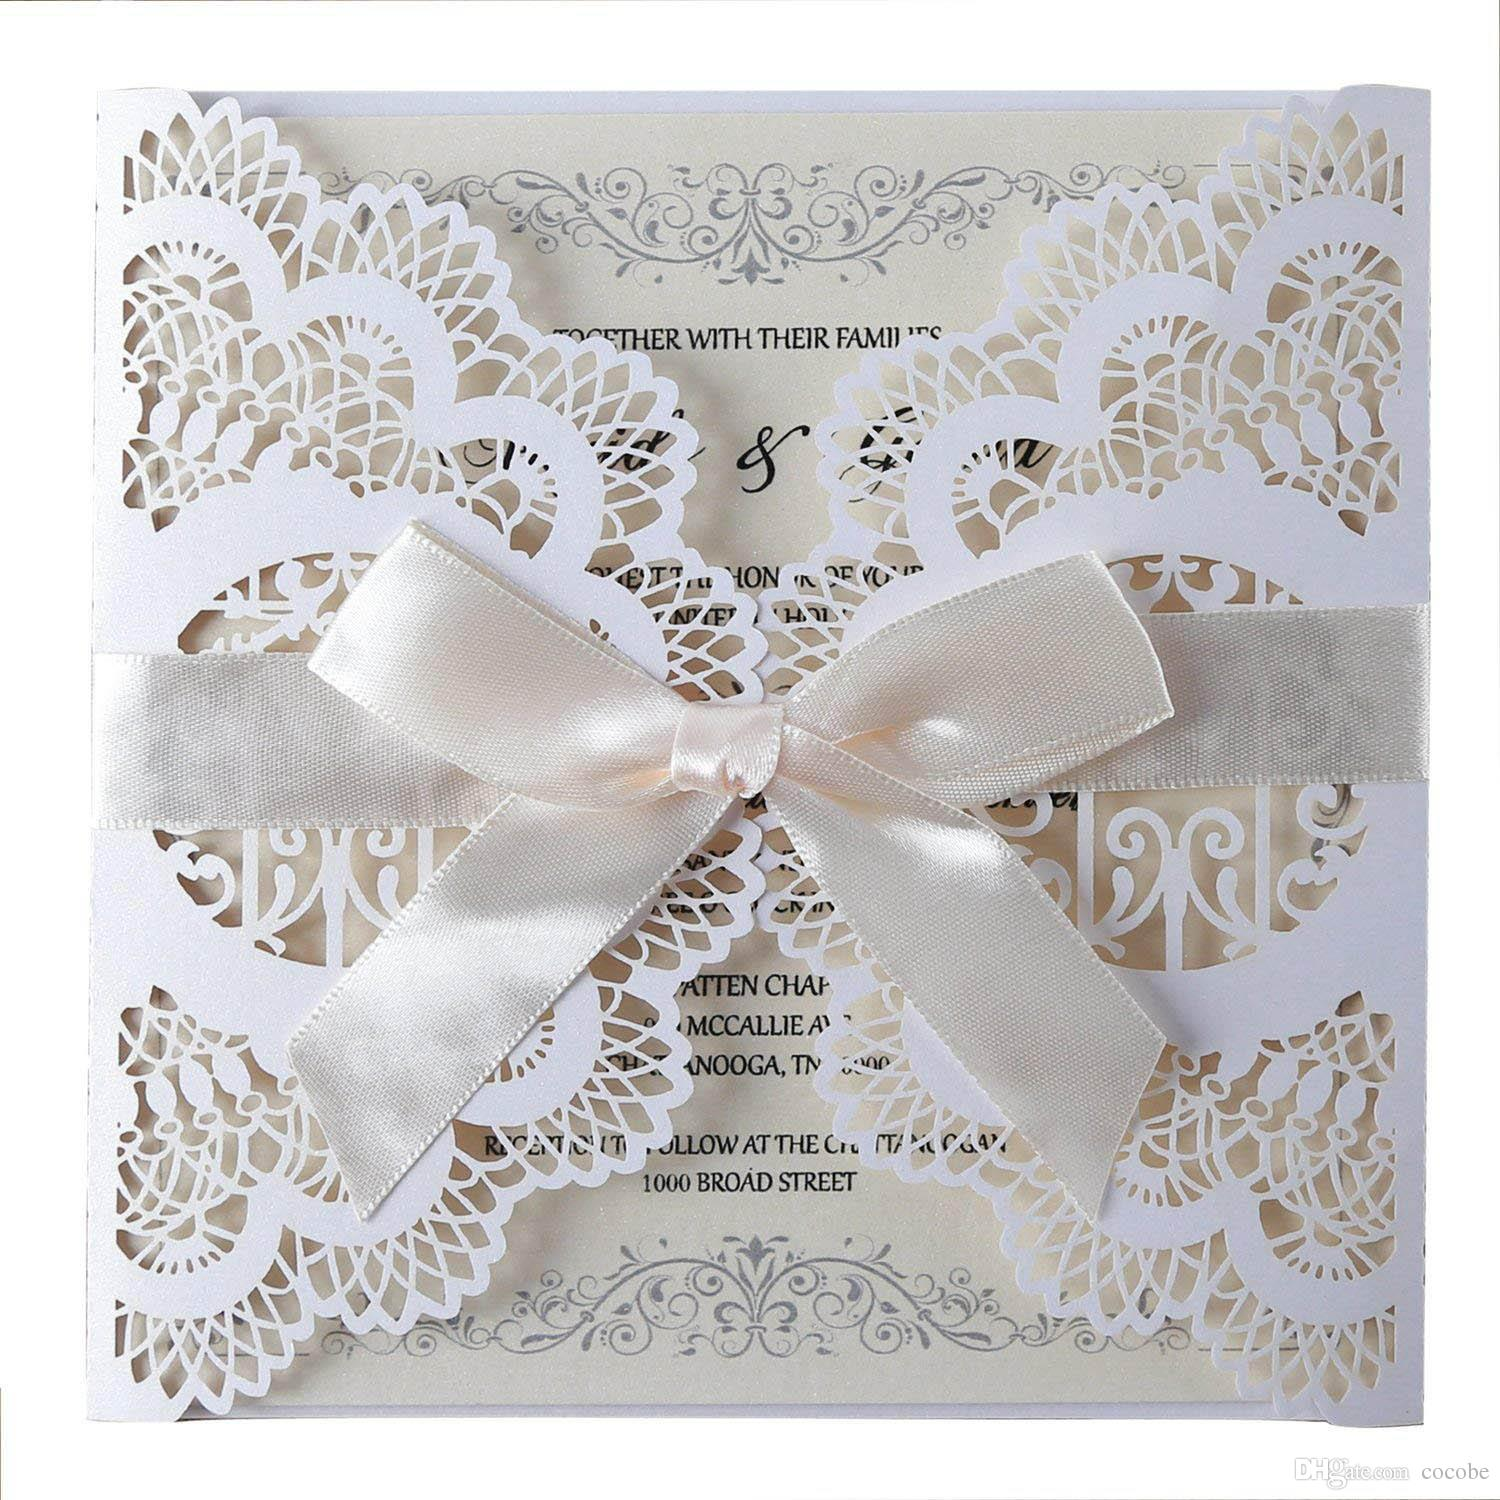 Laser Cut Wedding Invitations Cards With Bowknot Lace Flowers Blank Card For Engagement Birthday Quinceanera Cheap Beach: Blank Wedding Invitation Cards At Websimilar.org